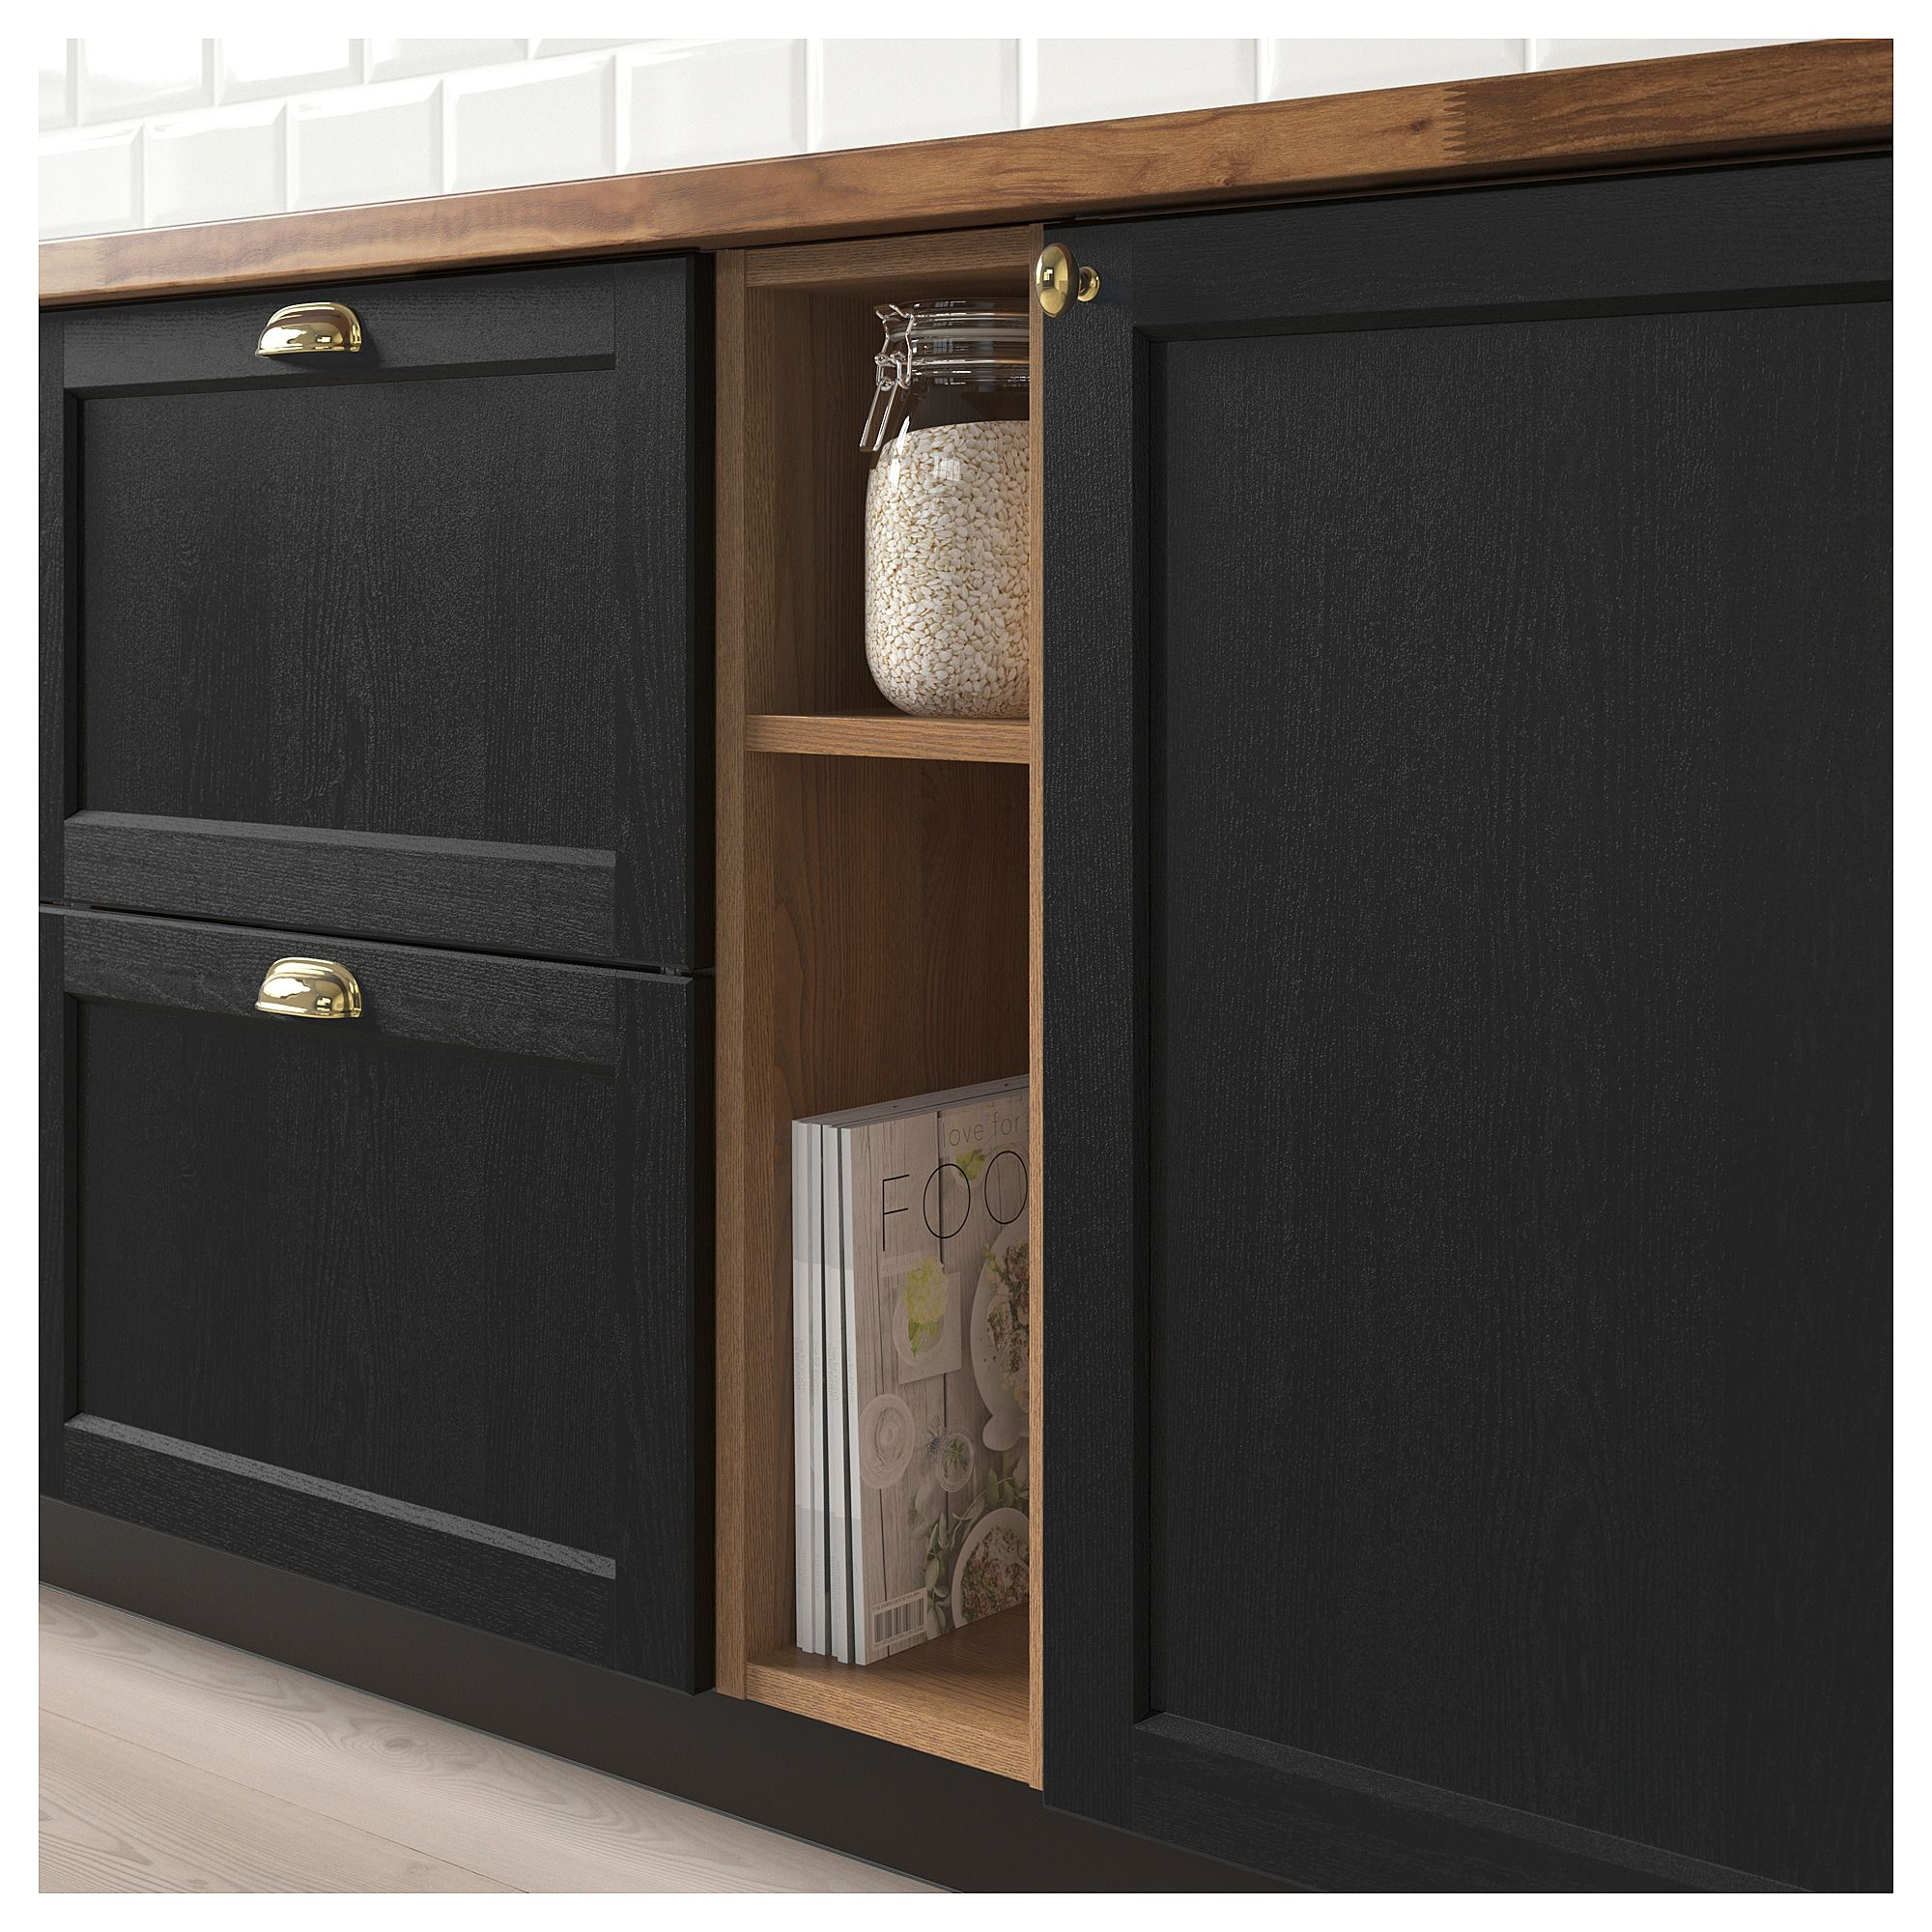 Vadholma Open Storage Brown Stained Ash 9x14 3 8x30 23x37x76